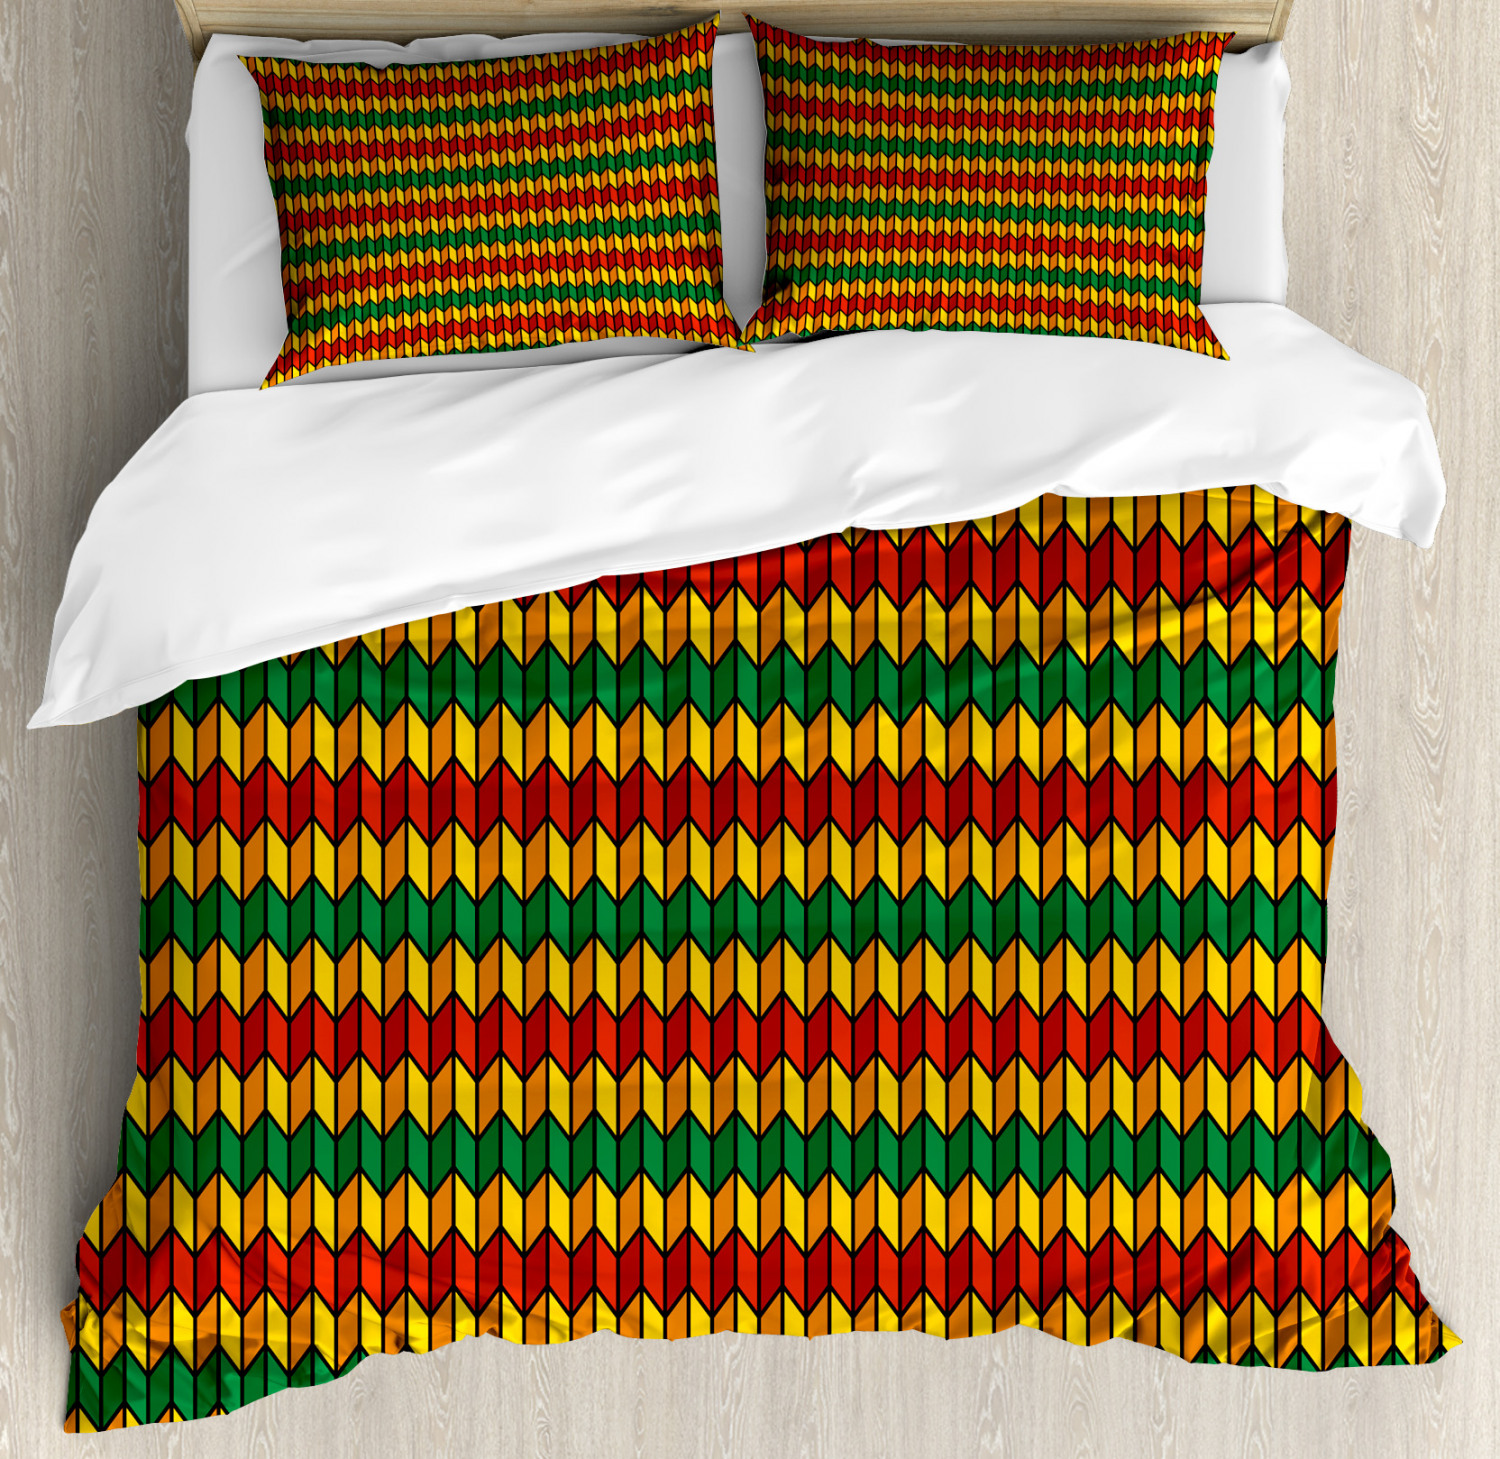 Rasta Duvet Cover Set with Pillow Shams Triangle Inspired Shapes Print